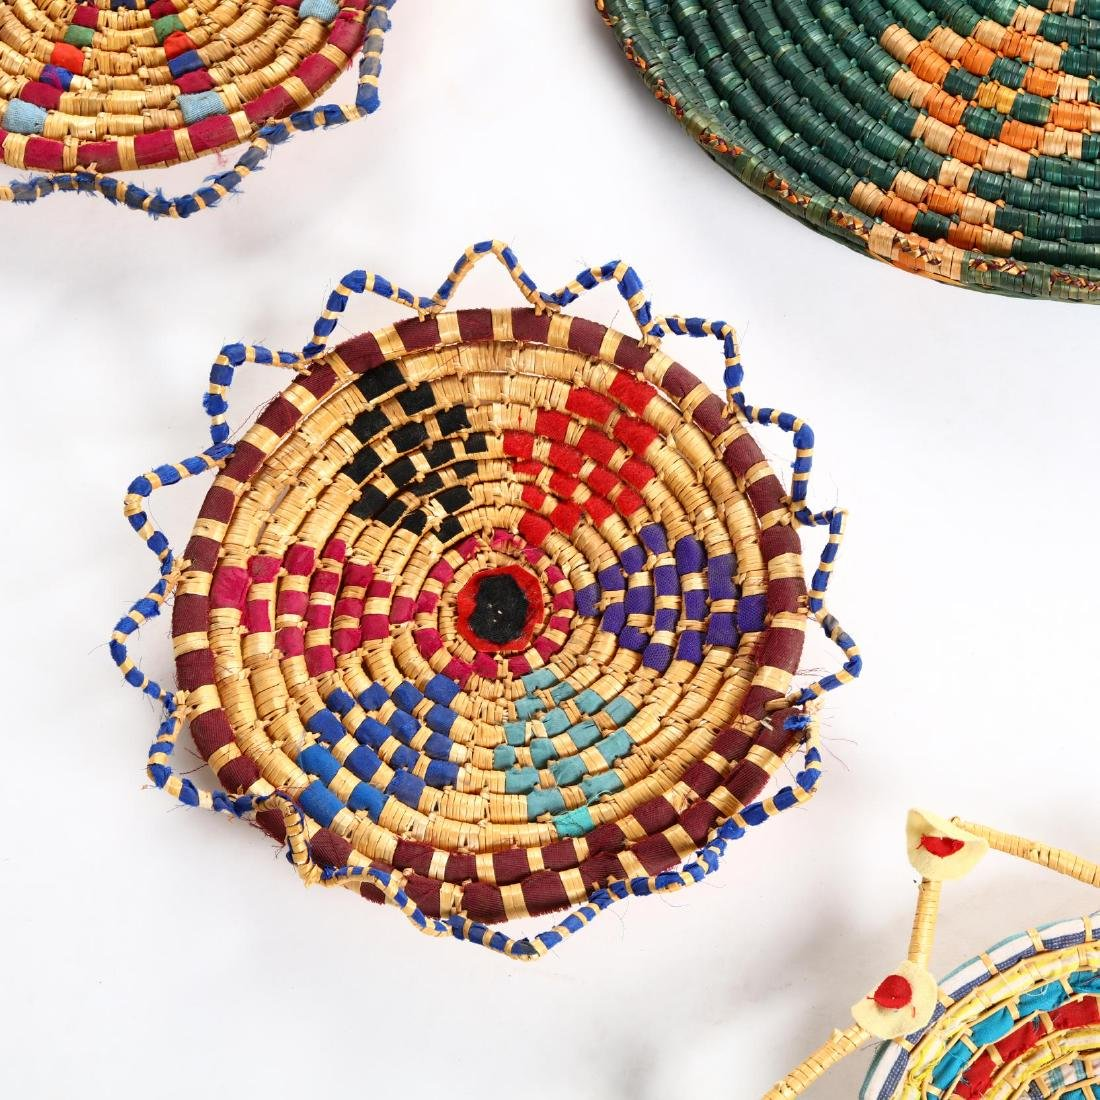 Group of Decorative Cypriot Serving Baskets - 2